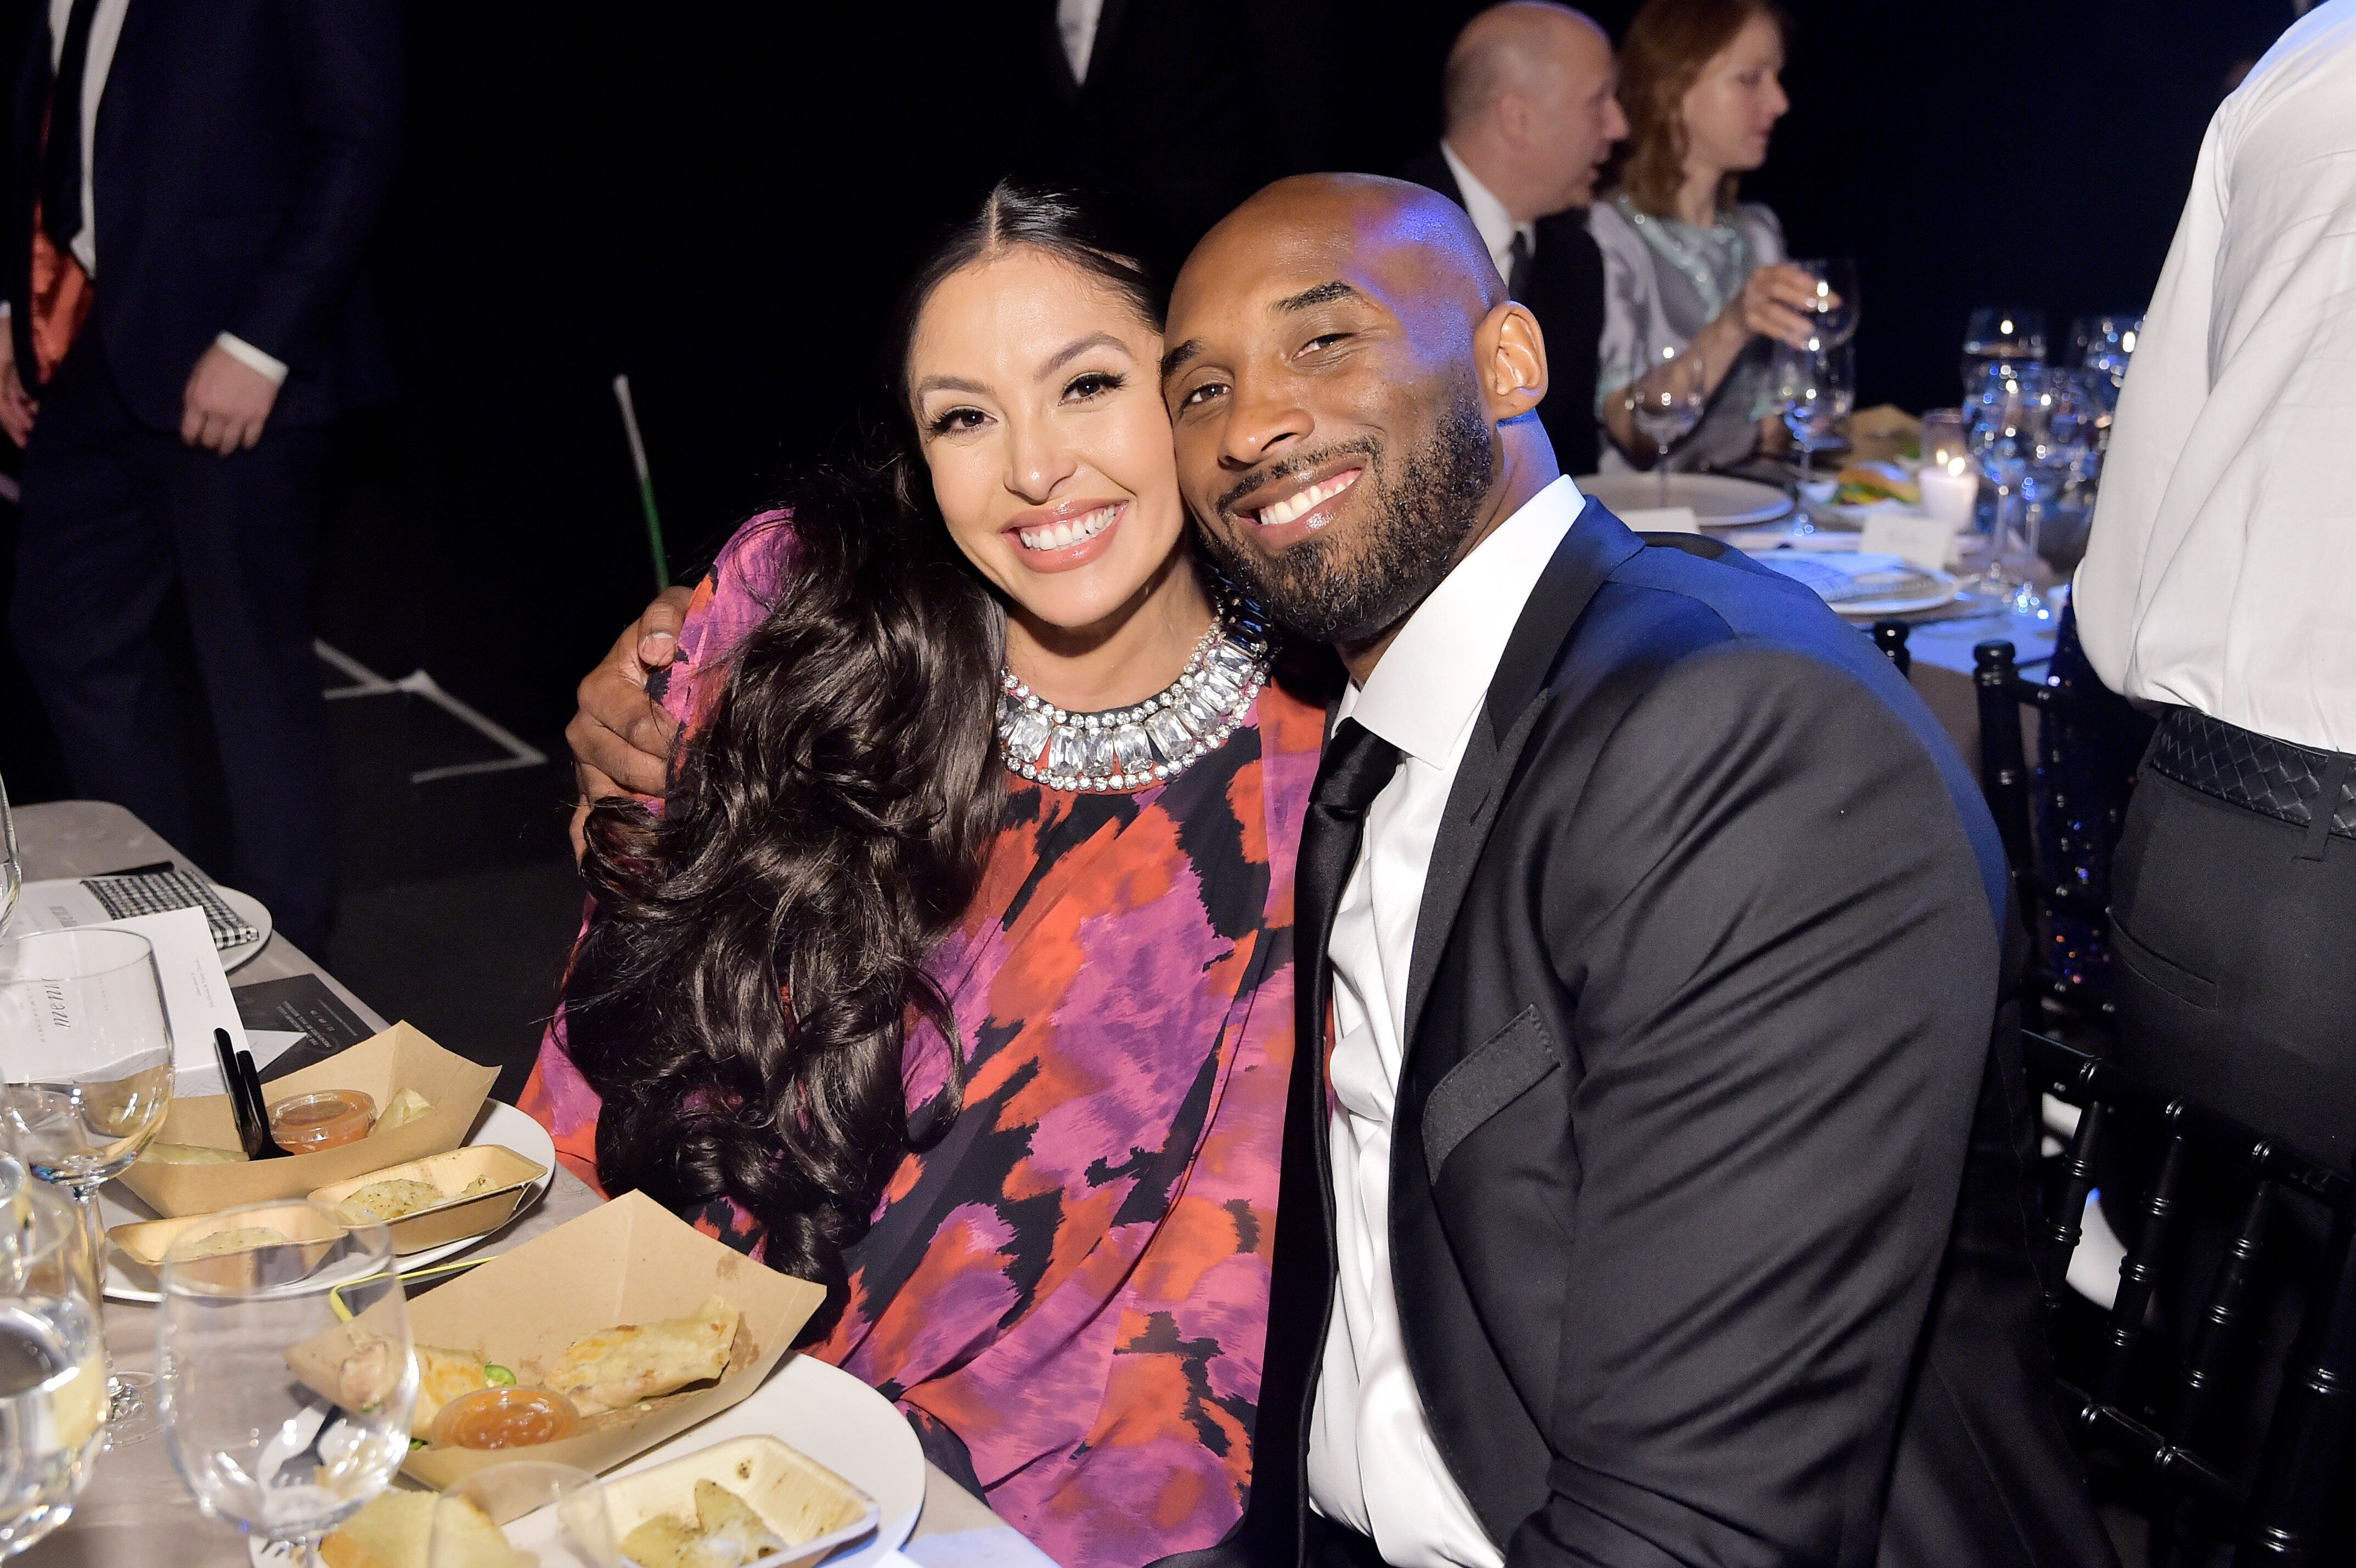 Vanessa and Kobe Bryant attend the 2019 Baby2Baby Gala presented by Paul Mitchell on Nov. 9, 2019, in Los Angeles.